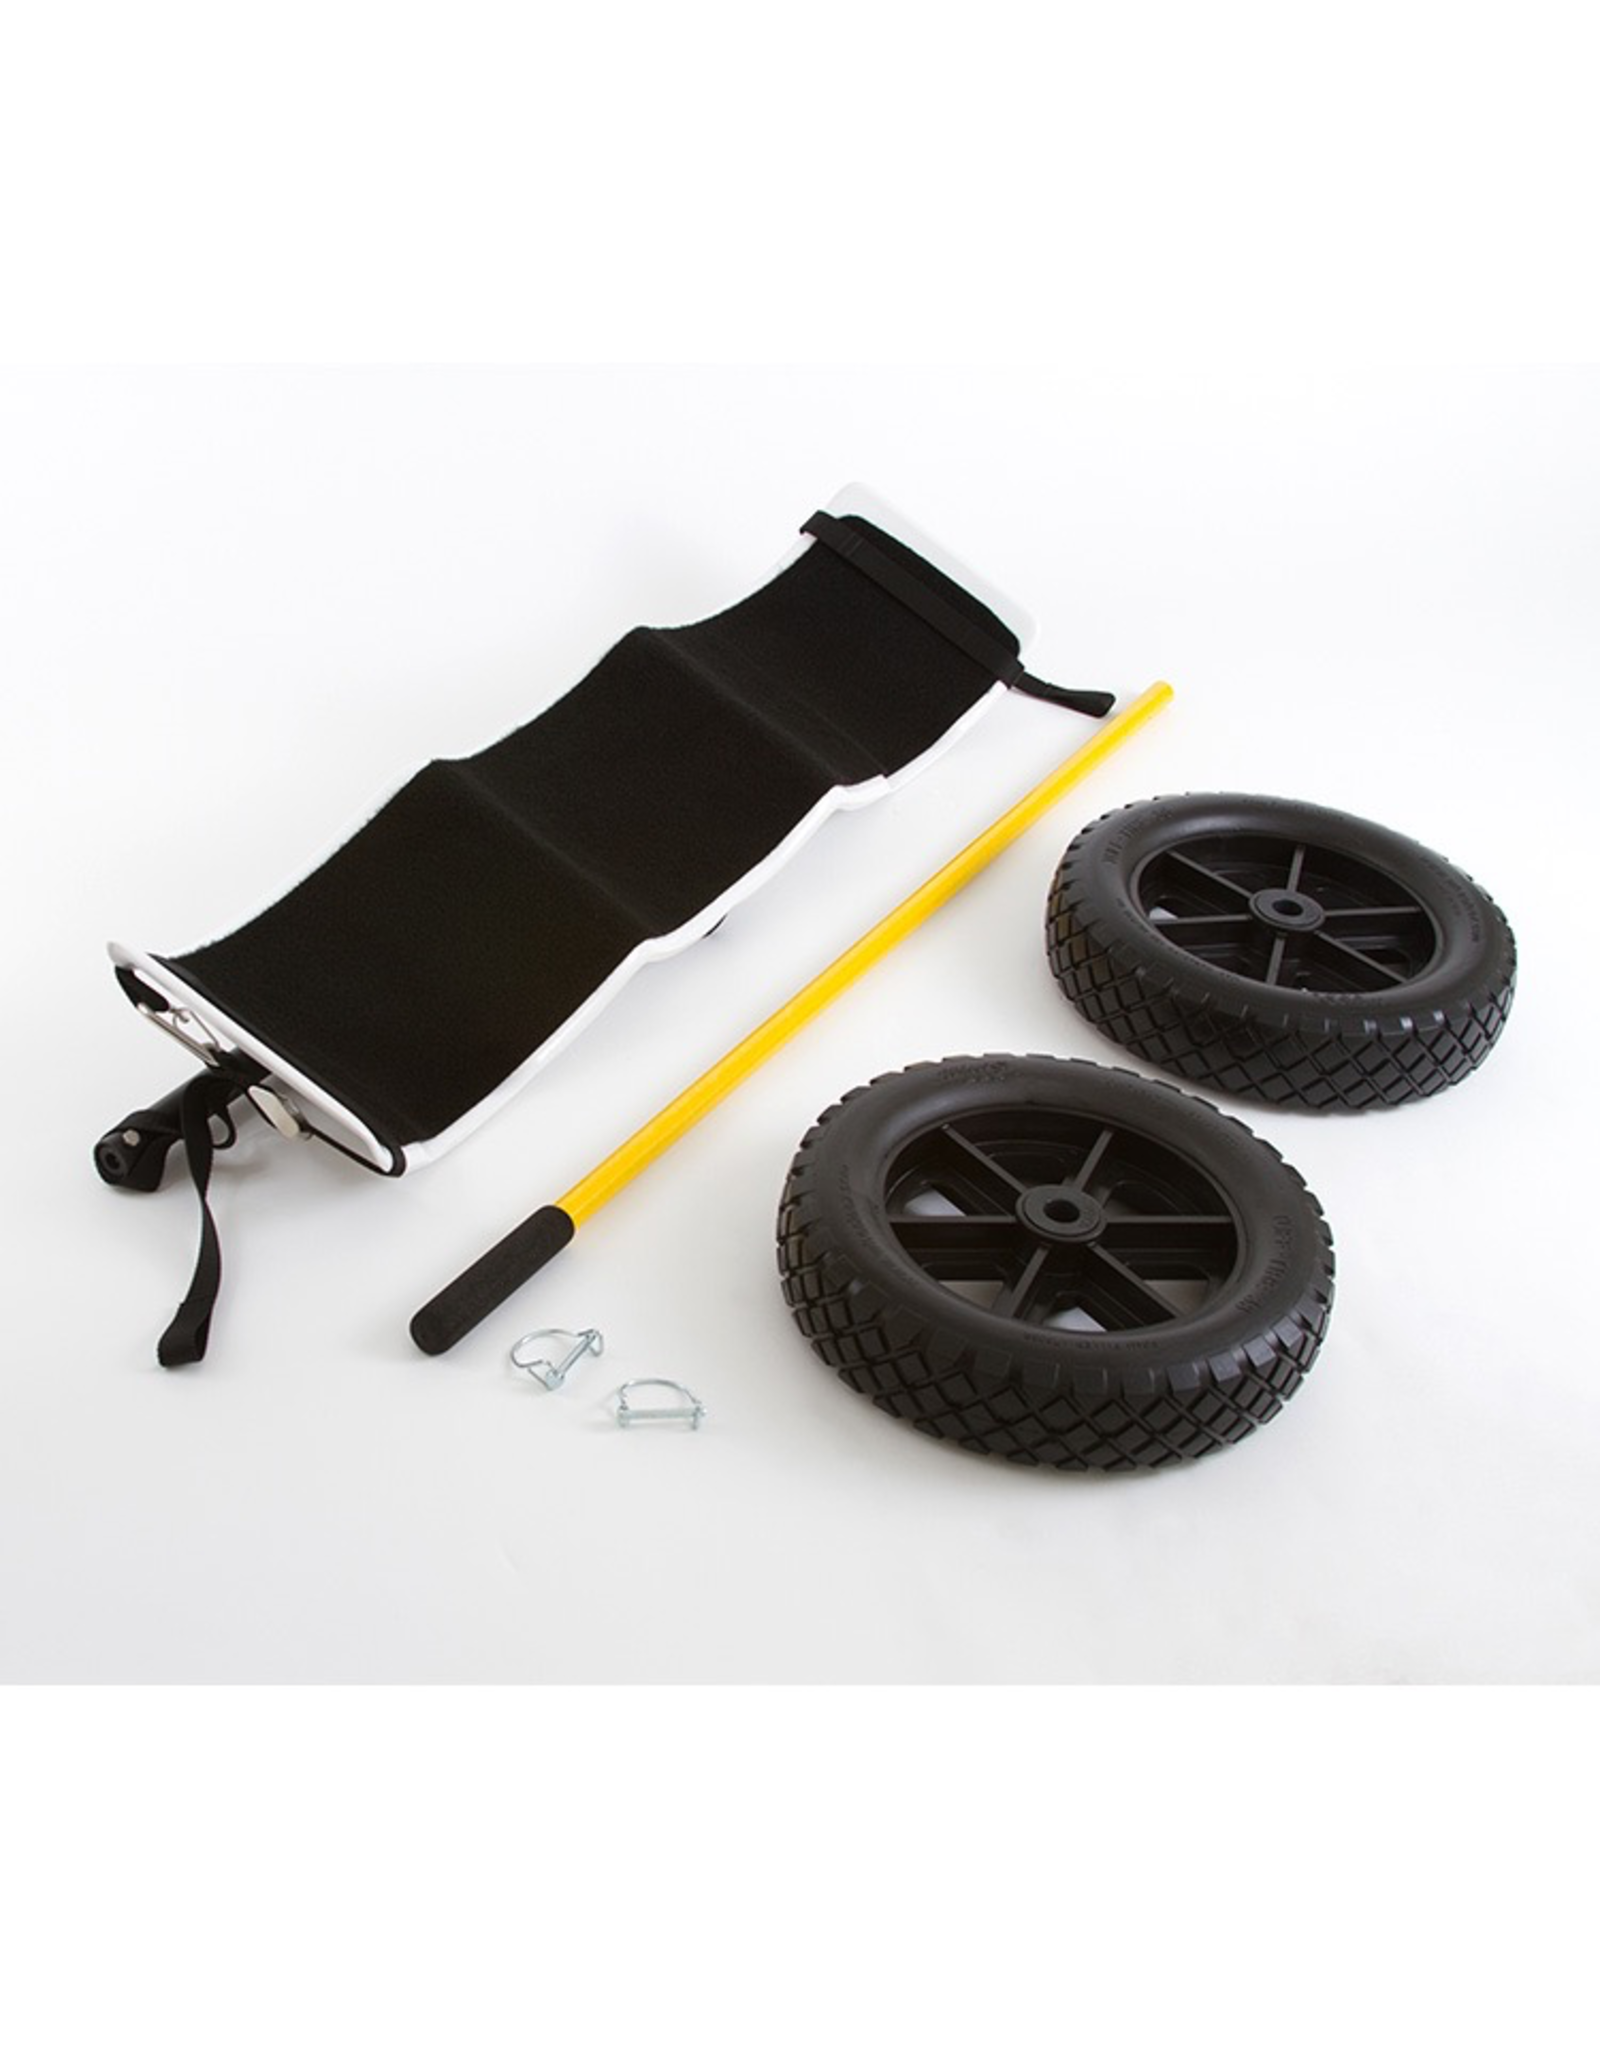 Hobie Hobie Dolly for Pro Angler 17, with Tuff Tires